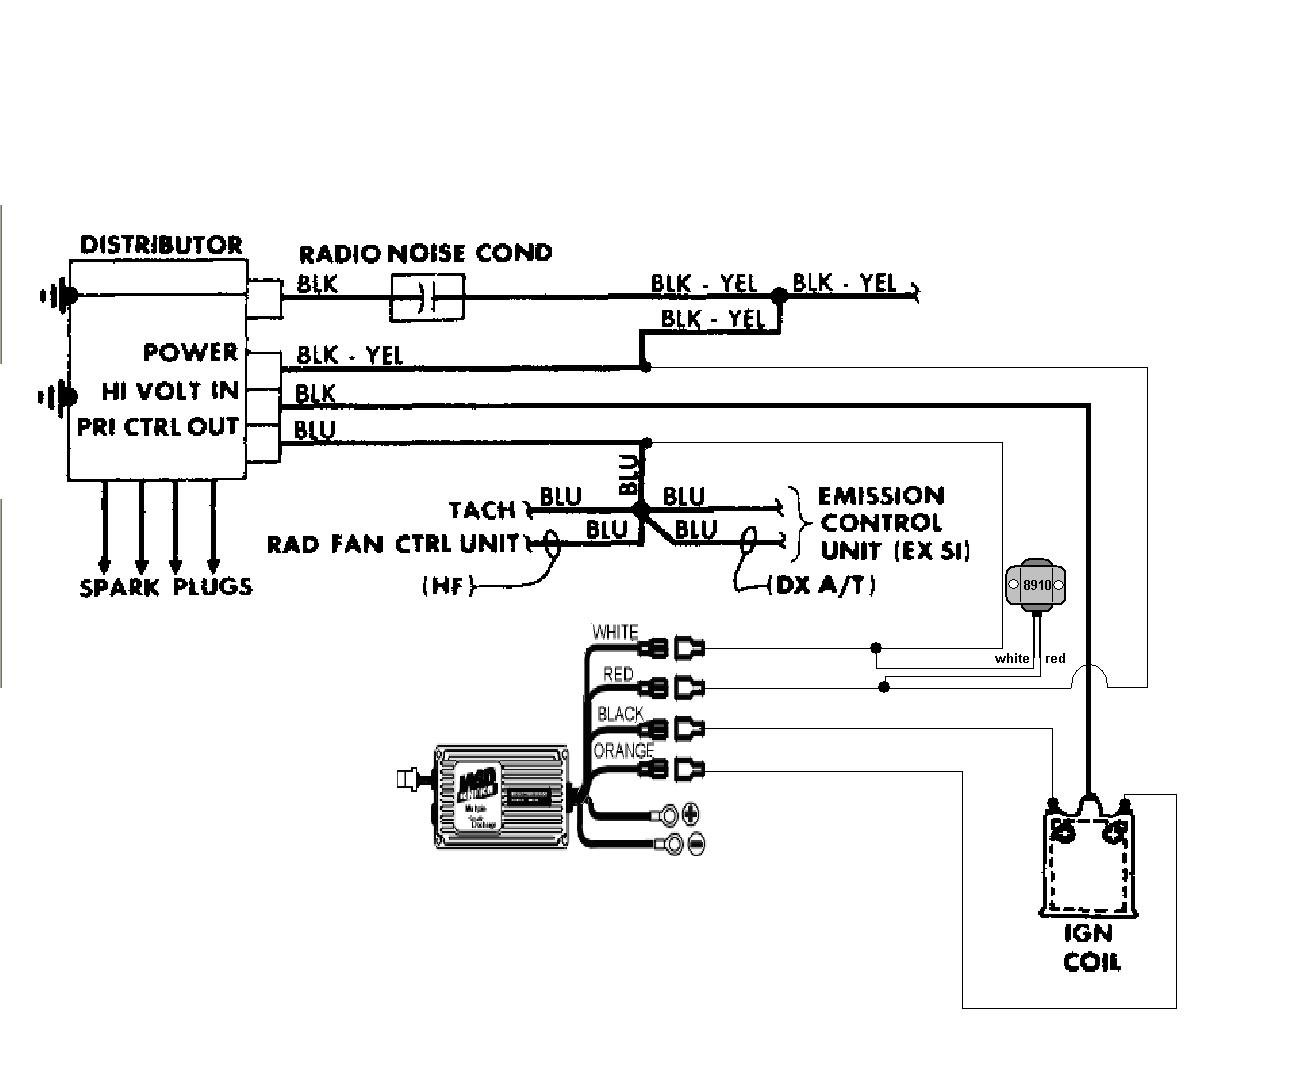 hight resolution of 1987 crx si wire diagram 24 wiring diagram images wiring diagrams mifinder co honda crx distributor wiring diagram honda civic wiring harness diagram